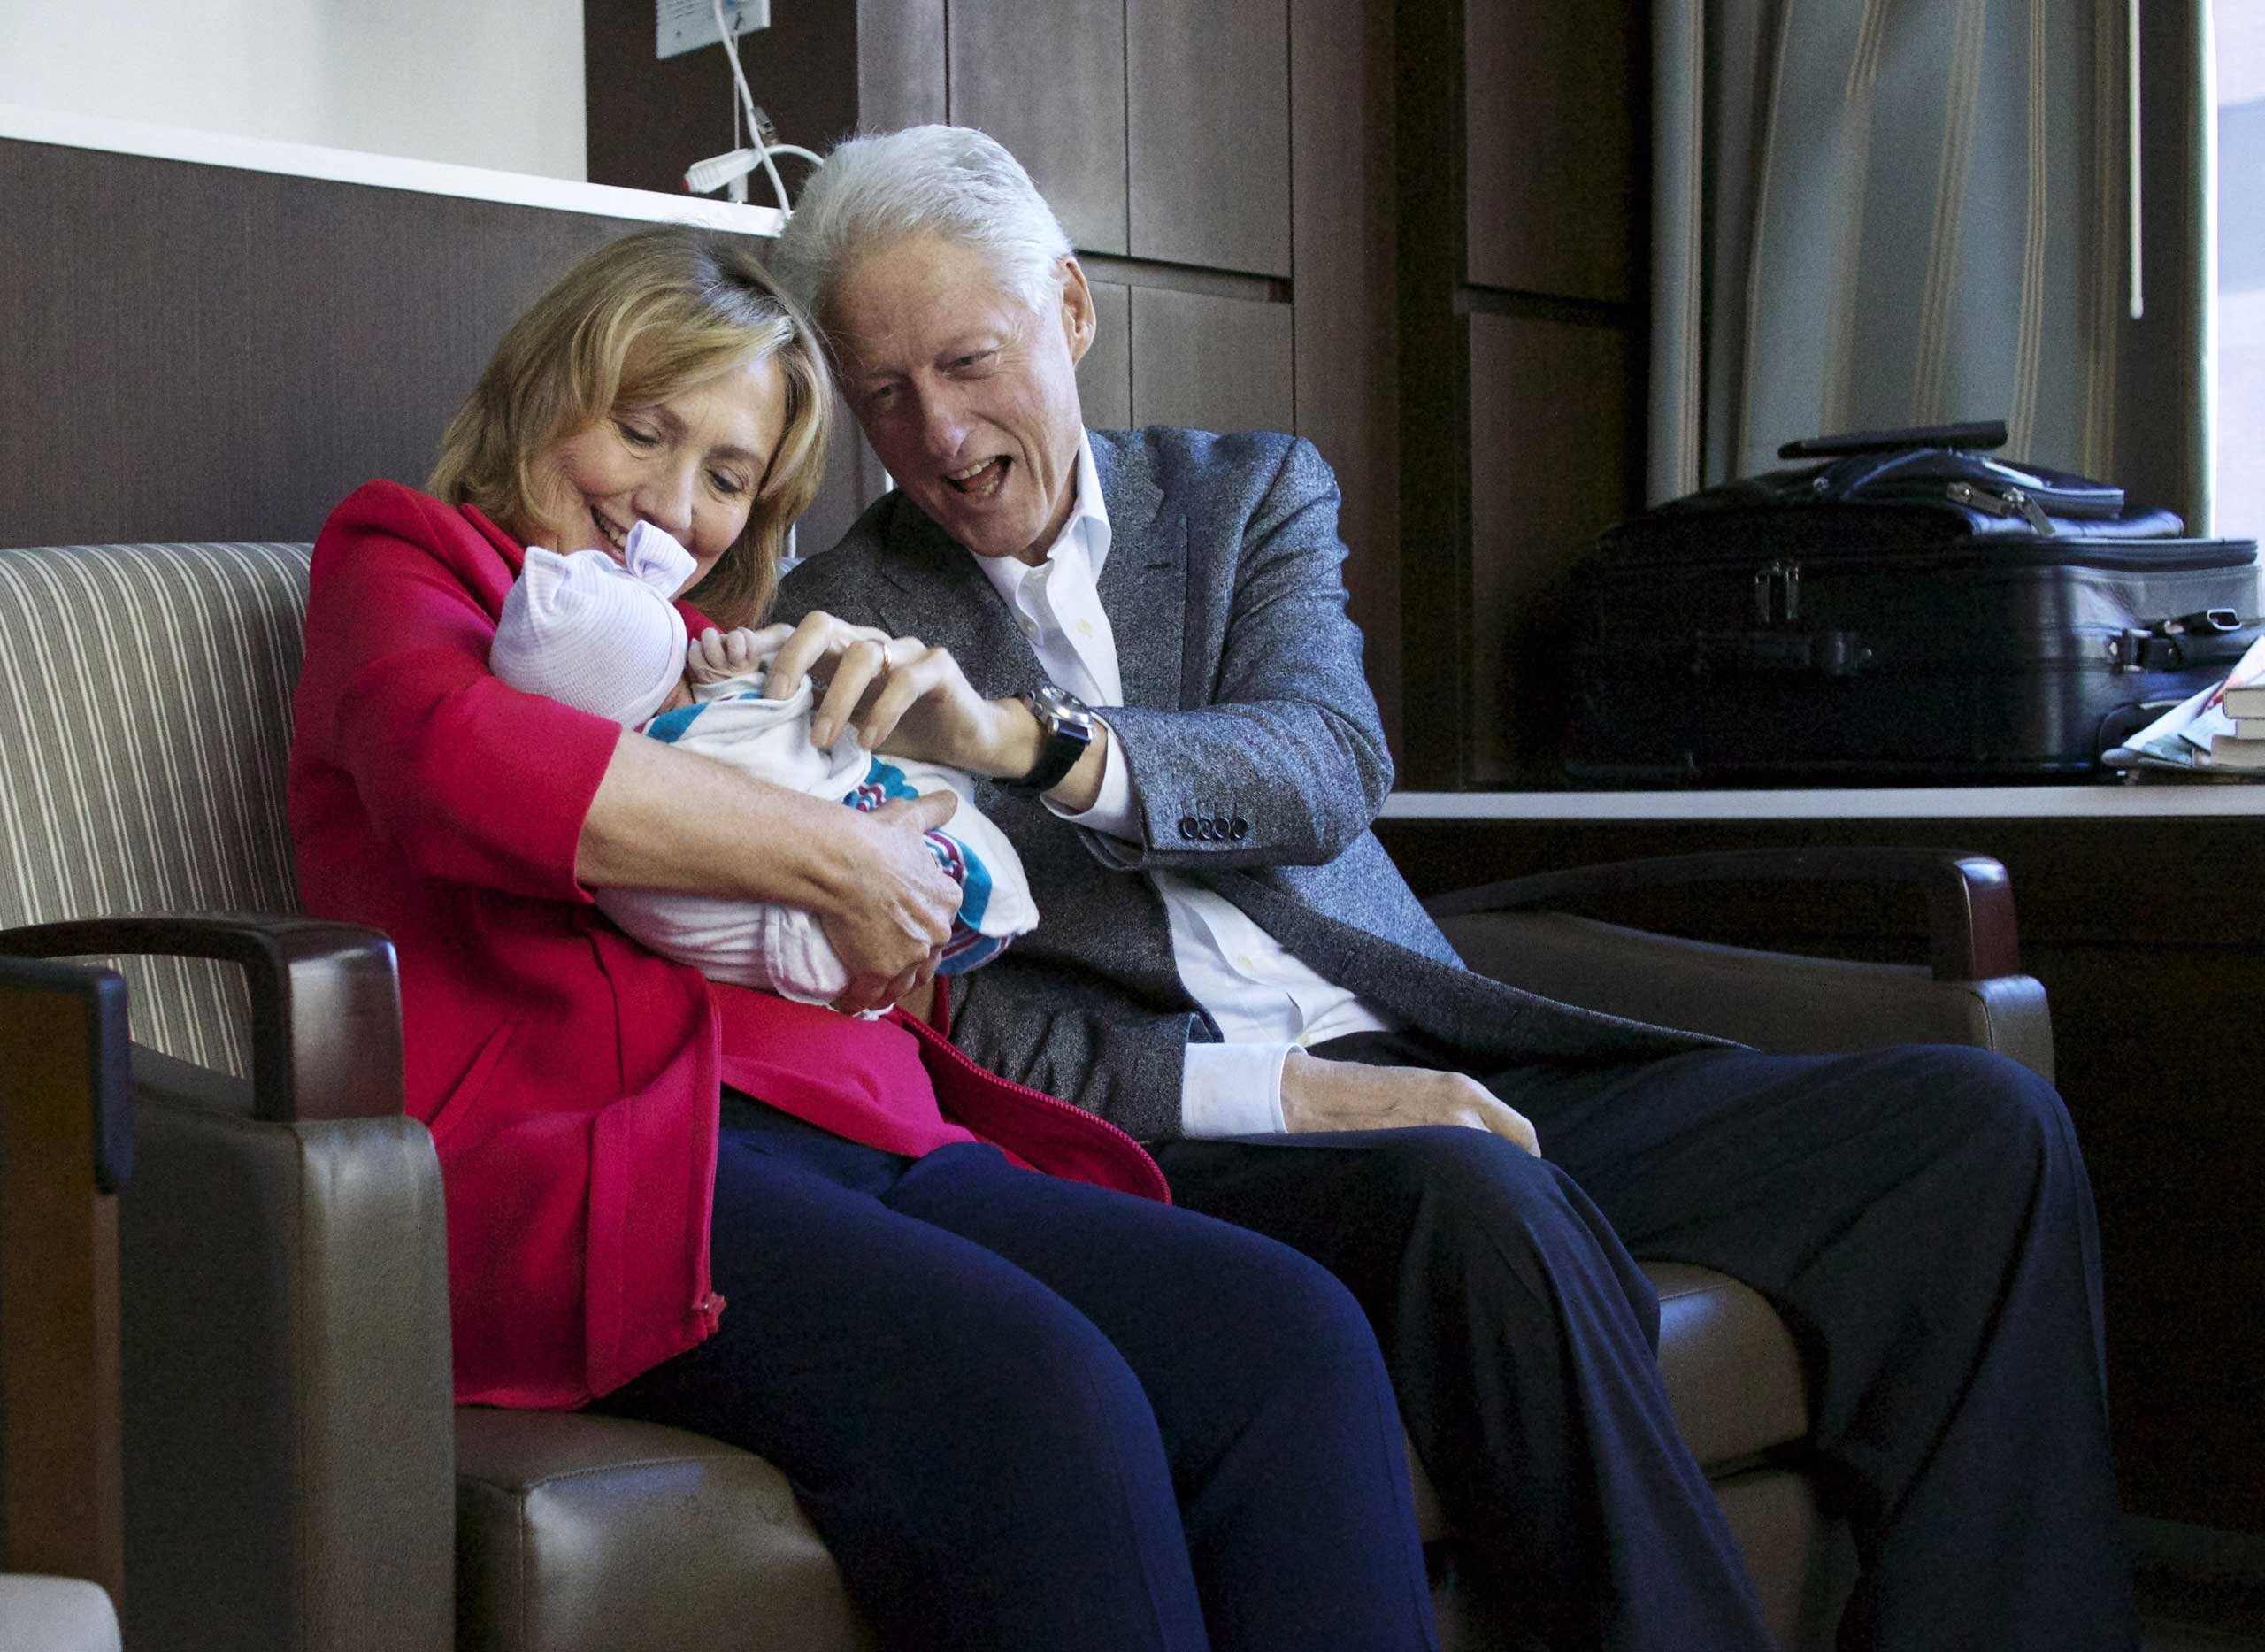 Sept. 27, 2014. In a handout from the Office of President Clinton, former Secretary of State Hillary Clinton (L) and fomer U.S. President Bill Clinton (R) hold their grandchild Charlotte Clinton Mezvinsky at Lenox Hill Hospital in New York City.